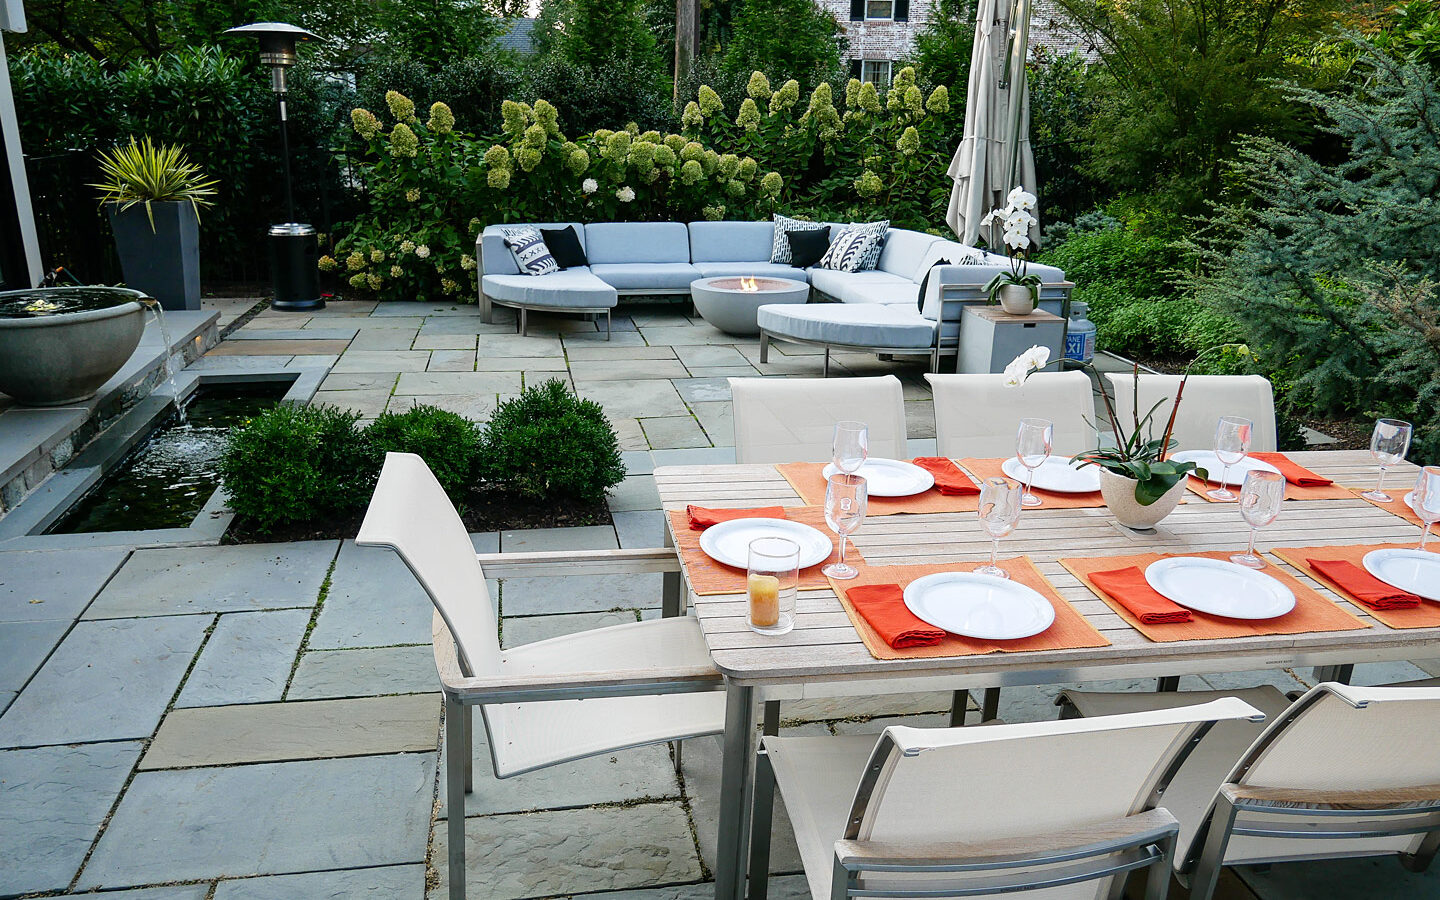 Patio with Dining, Lounging and fountain areas